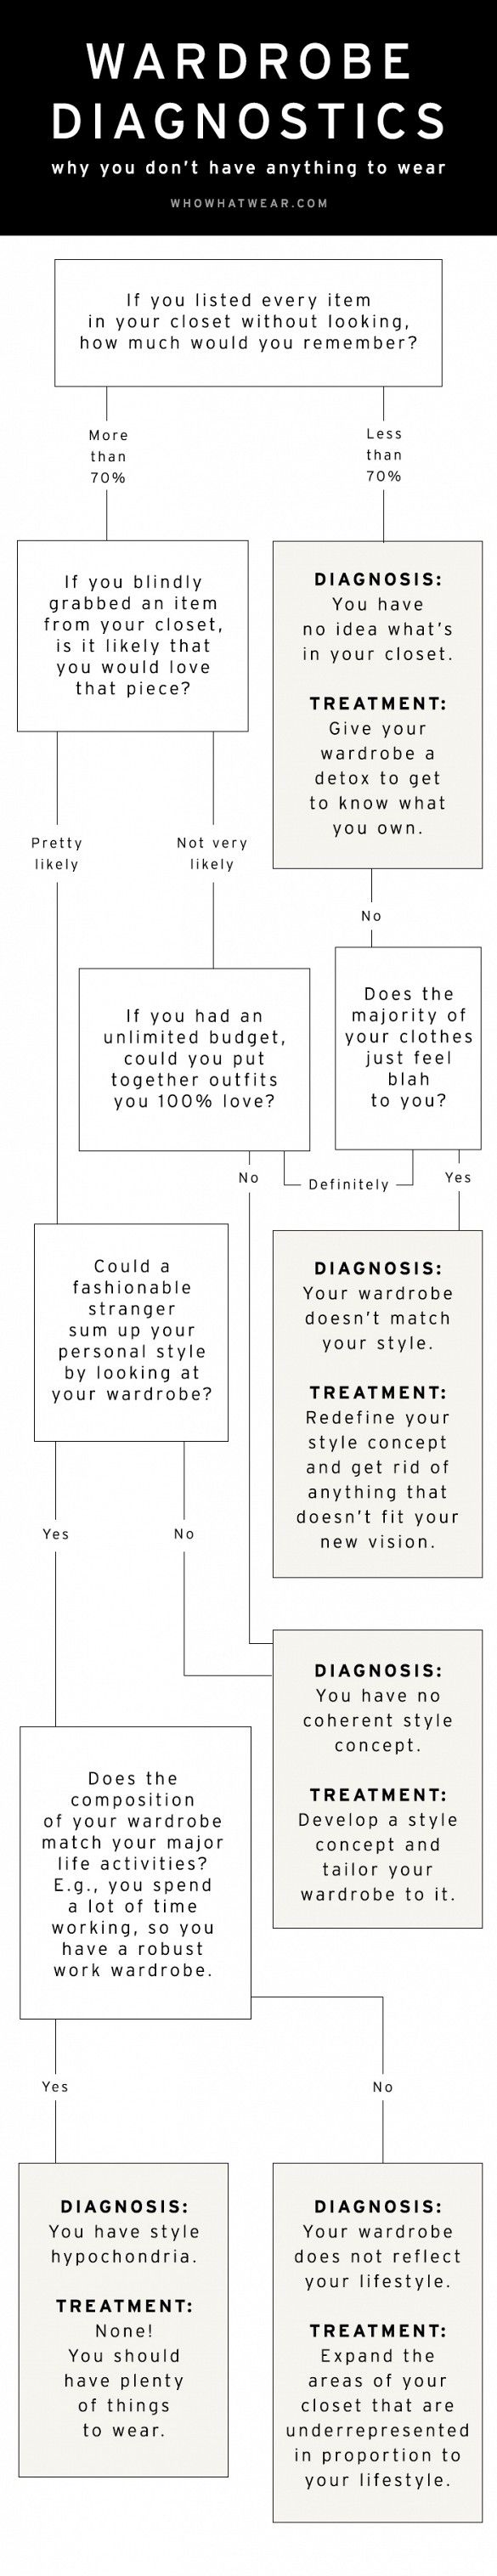 Wardrobe Diagnostics: Why You Have Nothing to Wear via @WhoWhatWear